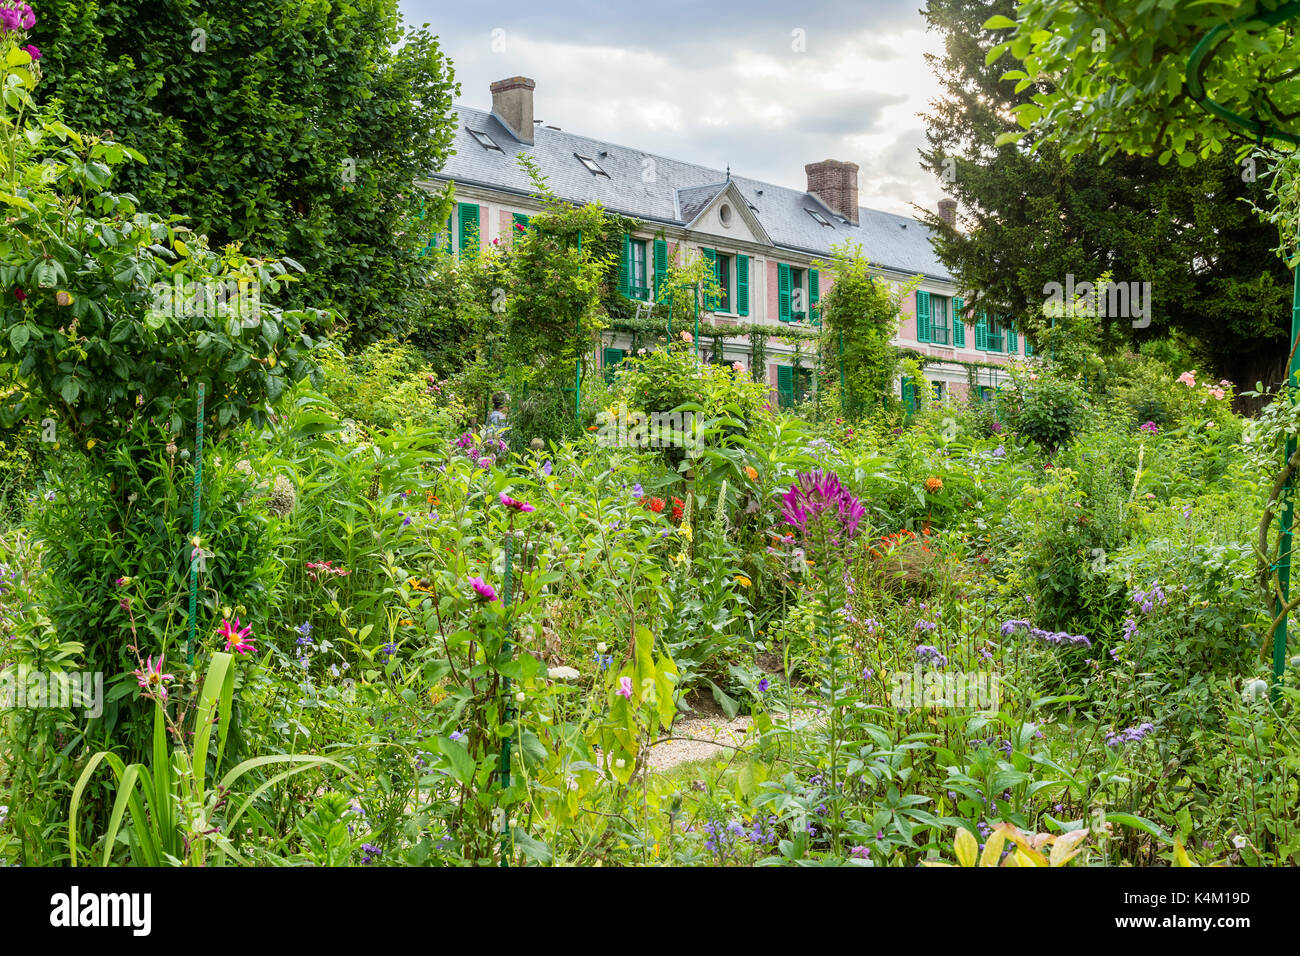 monet garden giverny stock photos monet garden giverny. Black Bedroom Furniture Sets. Home Design Ideas